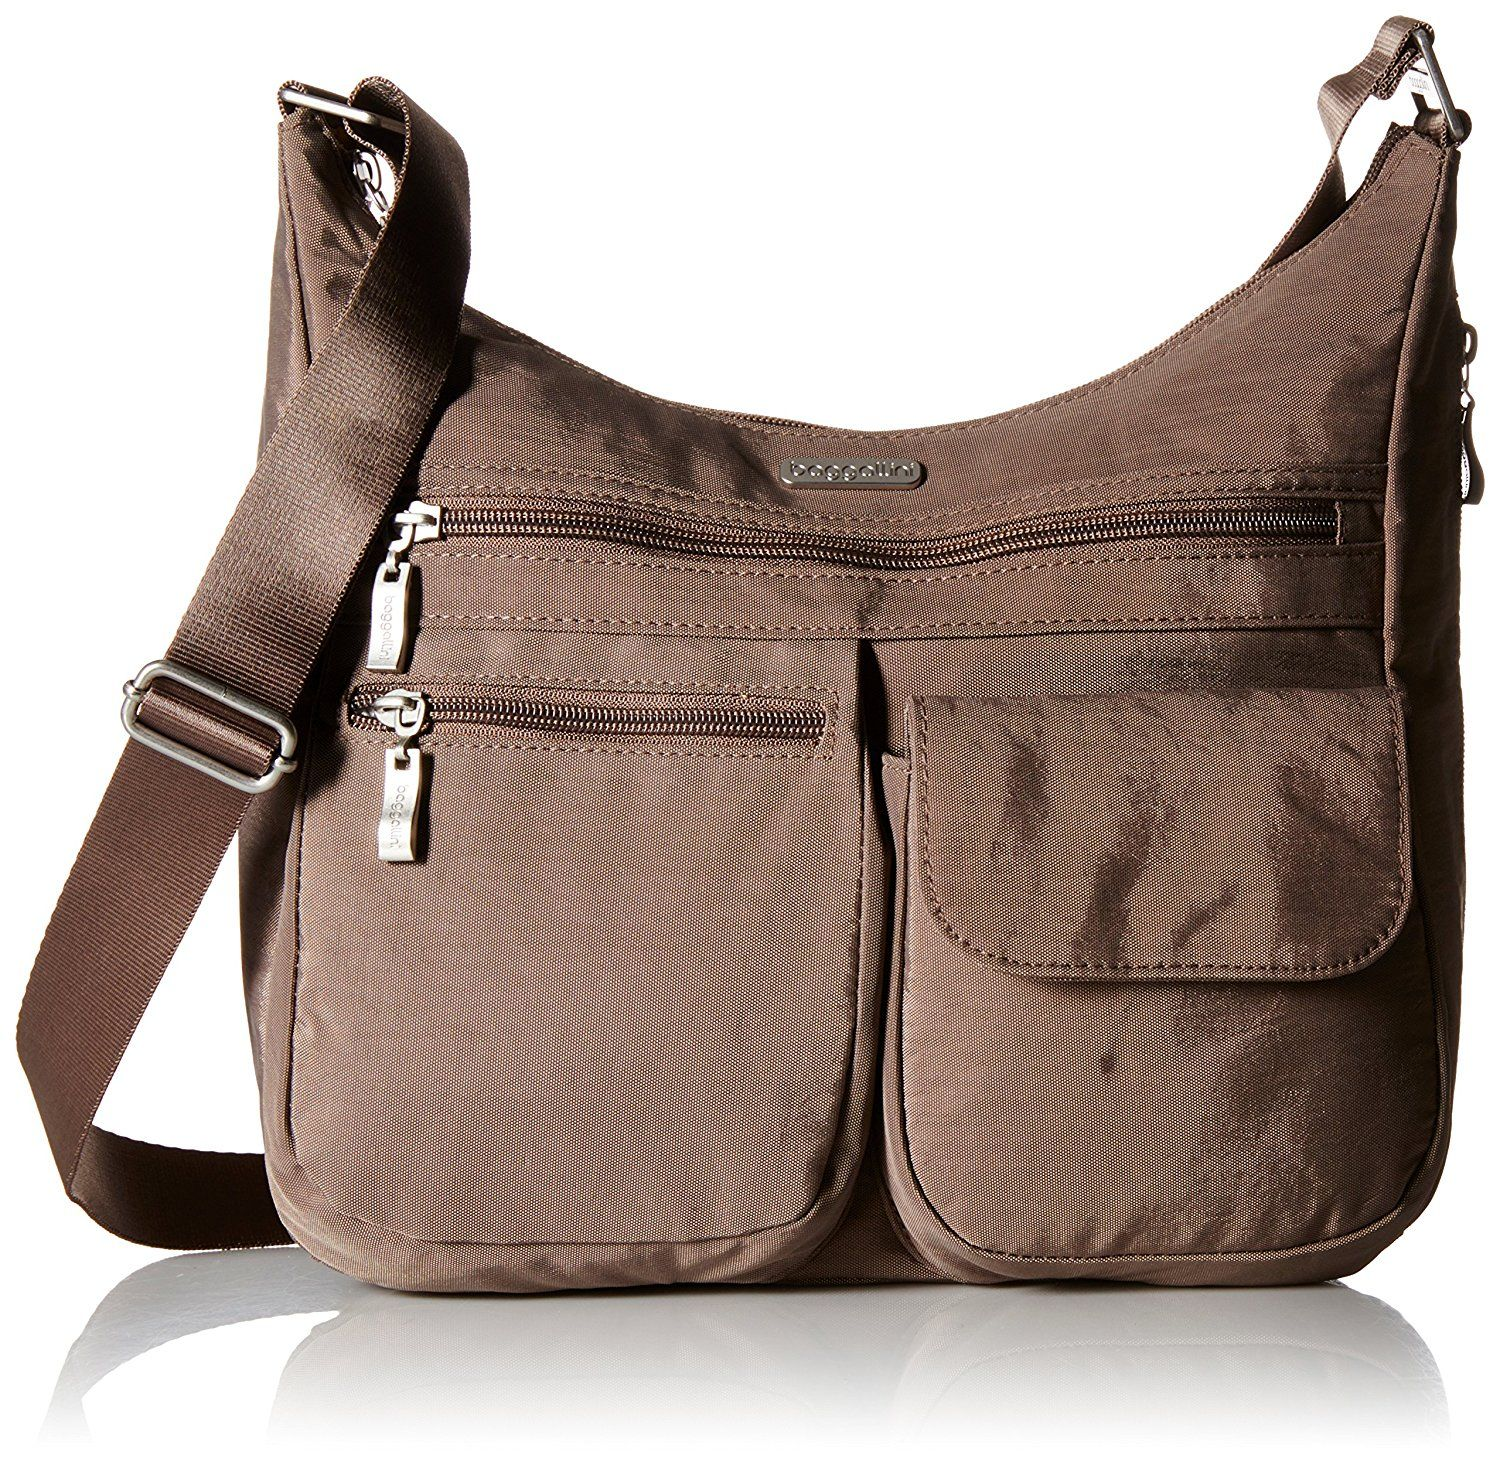 Baggallini Everywhere Lightweight Crossbody Bag Multi Pocketed Ious Water Resistant Travel Purse With Rfid Wristlet